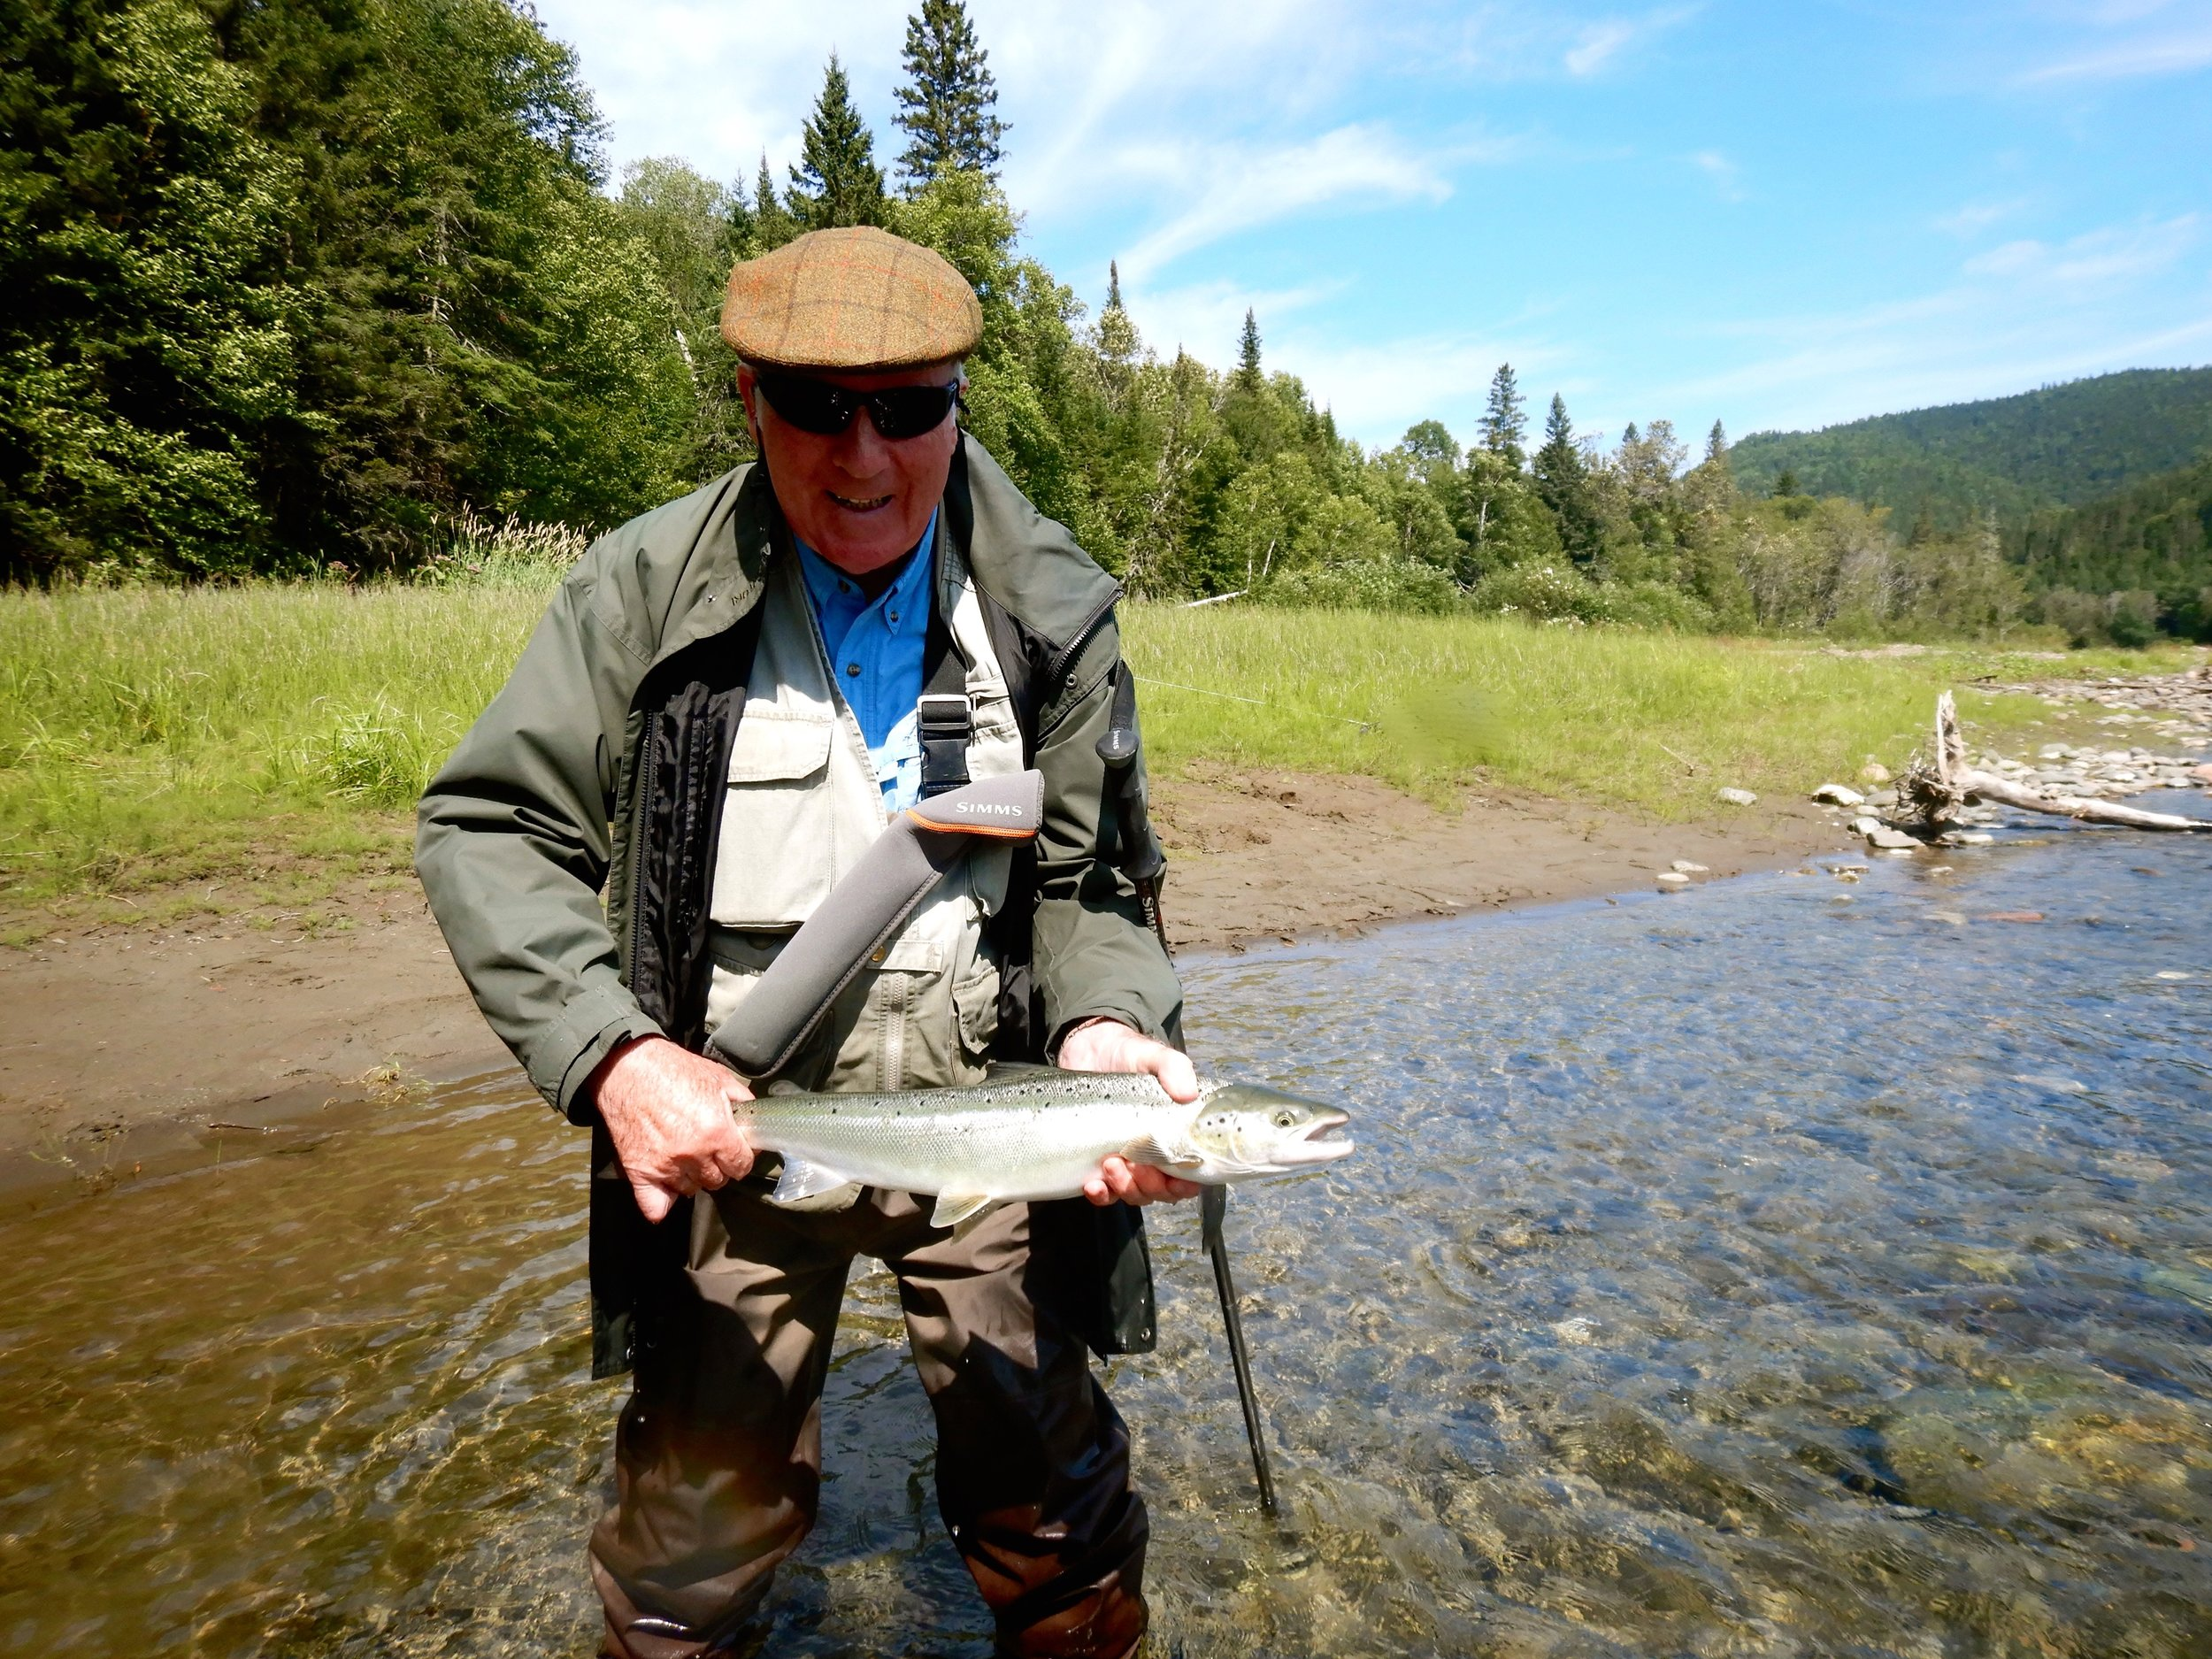 This was John Carroll's first trip to Salmon Lodge, Not the best water conditions this year John, next year will be better. Congratulations on your first salmon from Canadian waters.